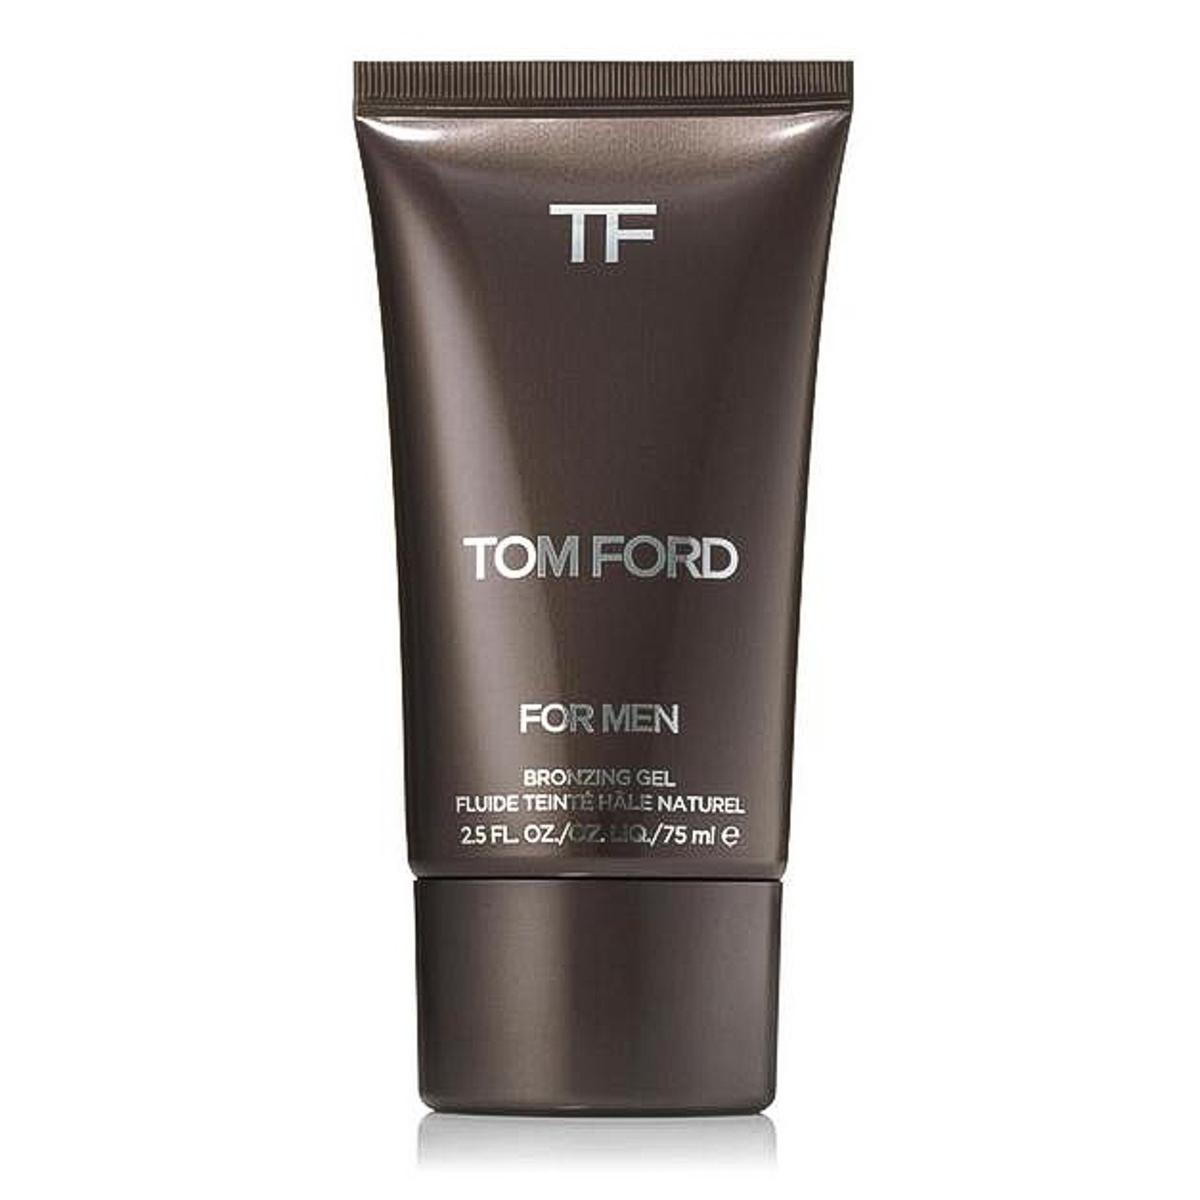 tom-ford-bronzing-gel-review-man-for-himself